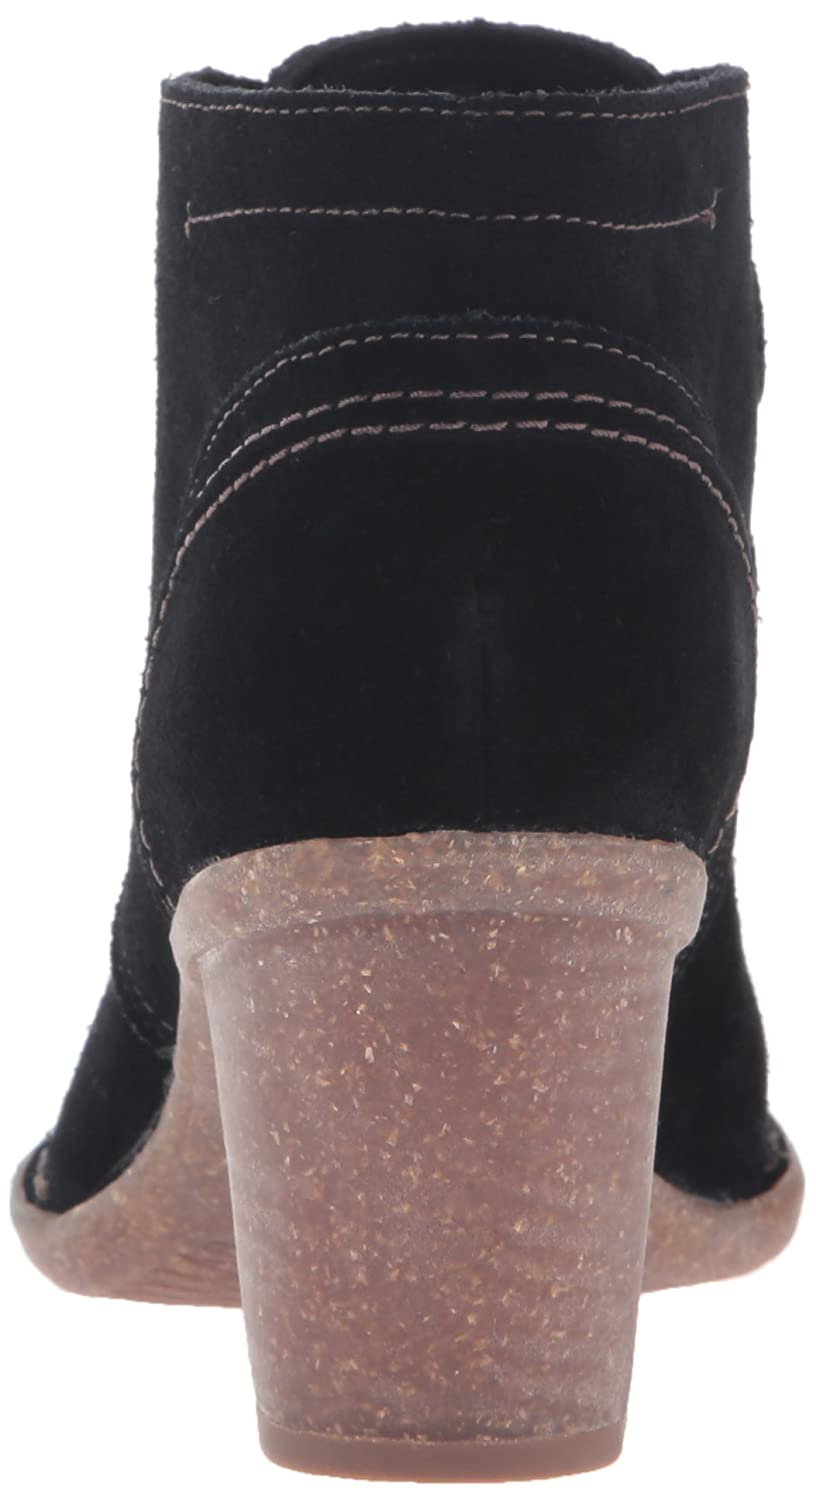 CLARKS Women's Carleta Lyon Boot Suede B0195SP03O 5 B(M) US|Black Suede Boot 23f766